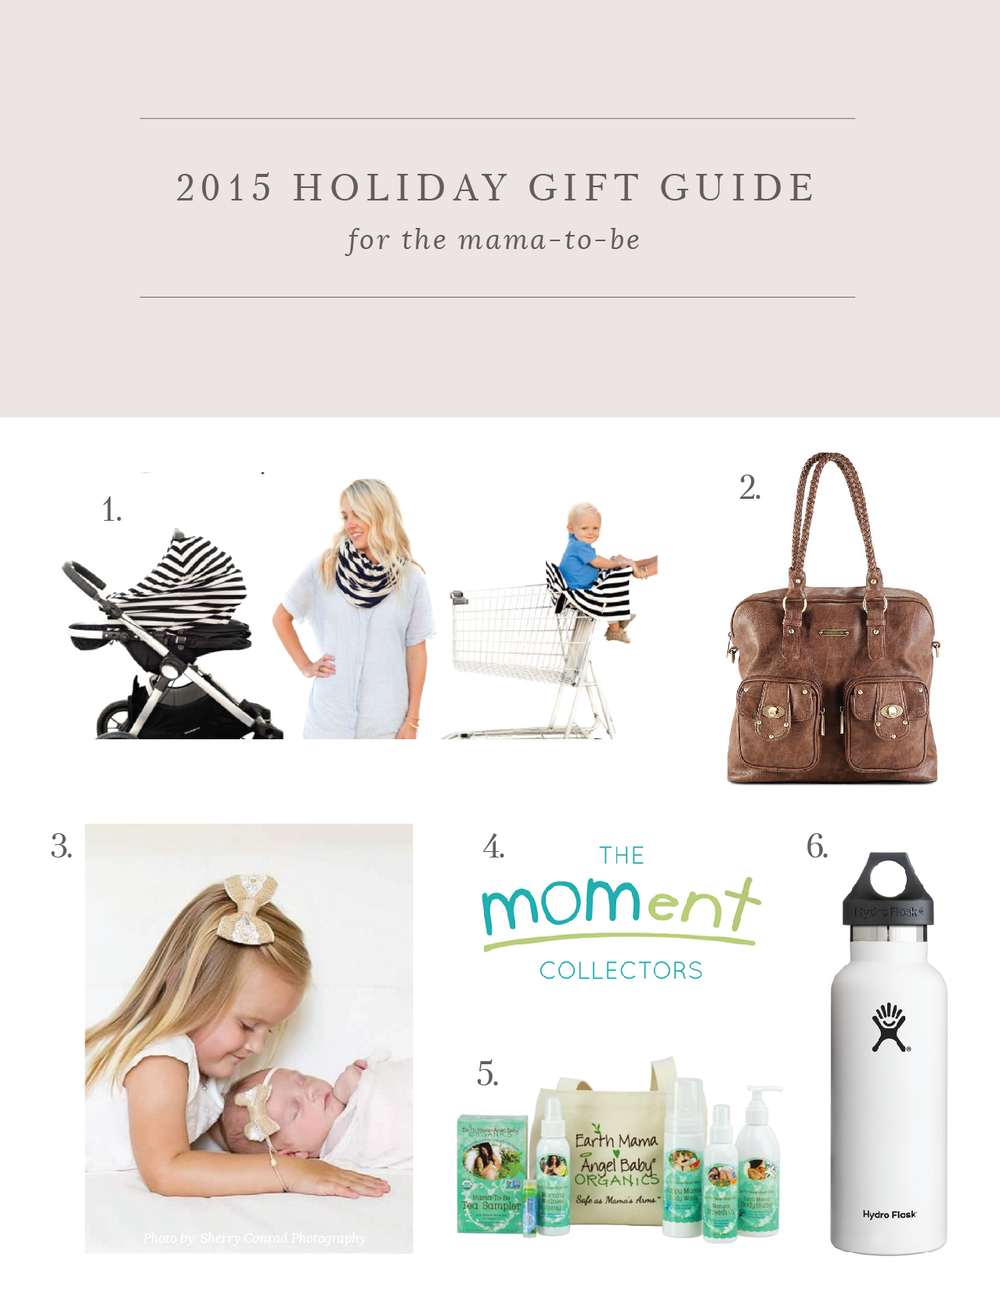 holiday-gift-guide-for-pregnant-mamas.jpg